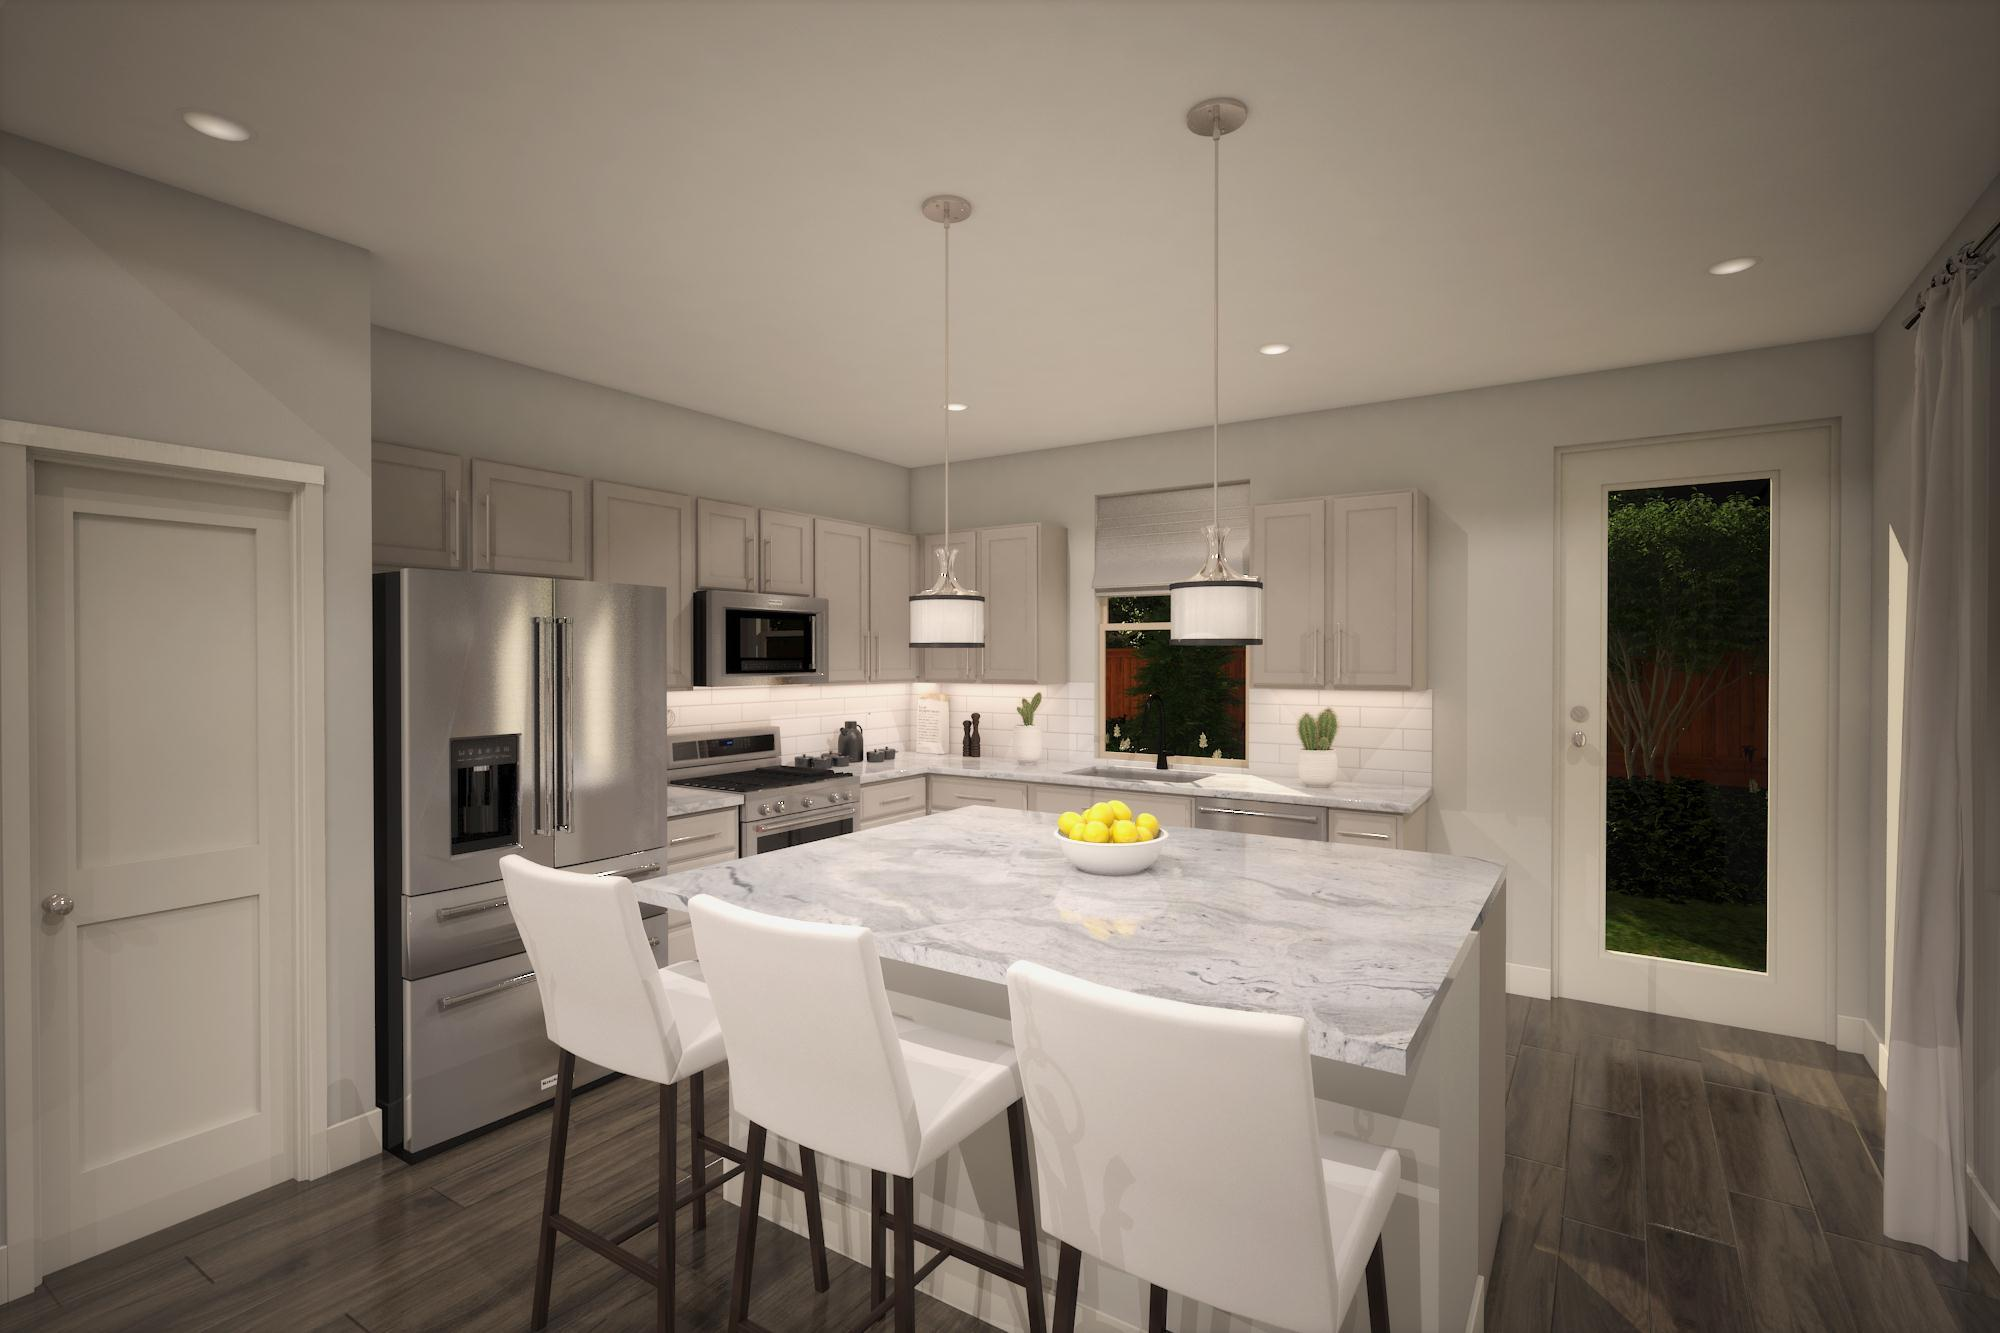 Kitchen featured in the Plan 5- 2377 By Jenuane Communities in Reno, NV